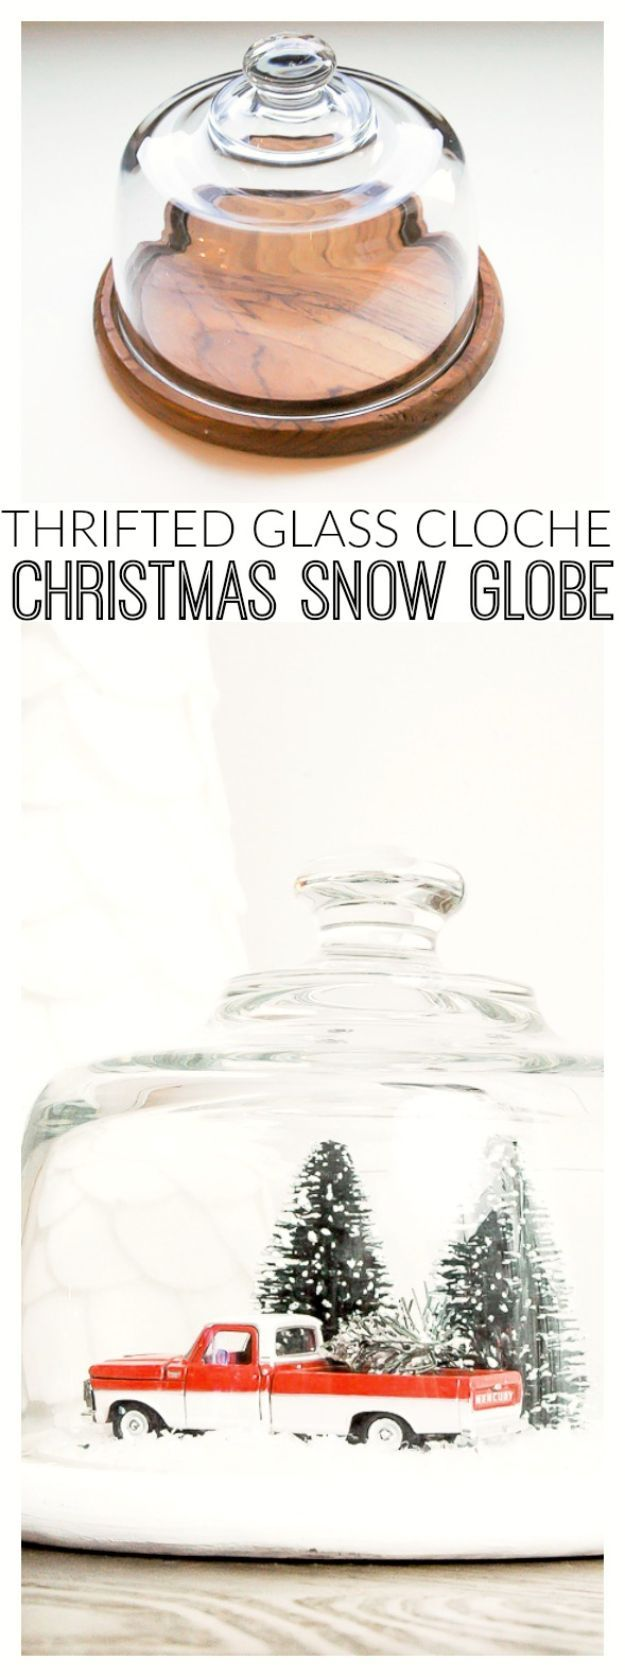 DIY Snow Globe Ideas – Thrifted Glass Cloche Turned Vintage Snow Globe – Easy Ideas To Make Snow Globes With Kids – Mason Jar, Picture, Ornament, Waterless Christmas Crafts – Cheap DYI Holiday Gift Ideas